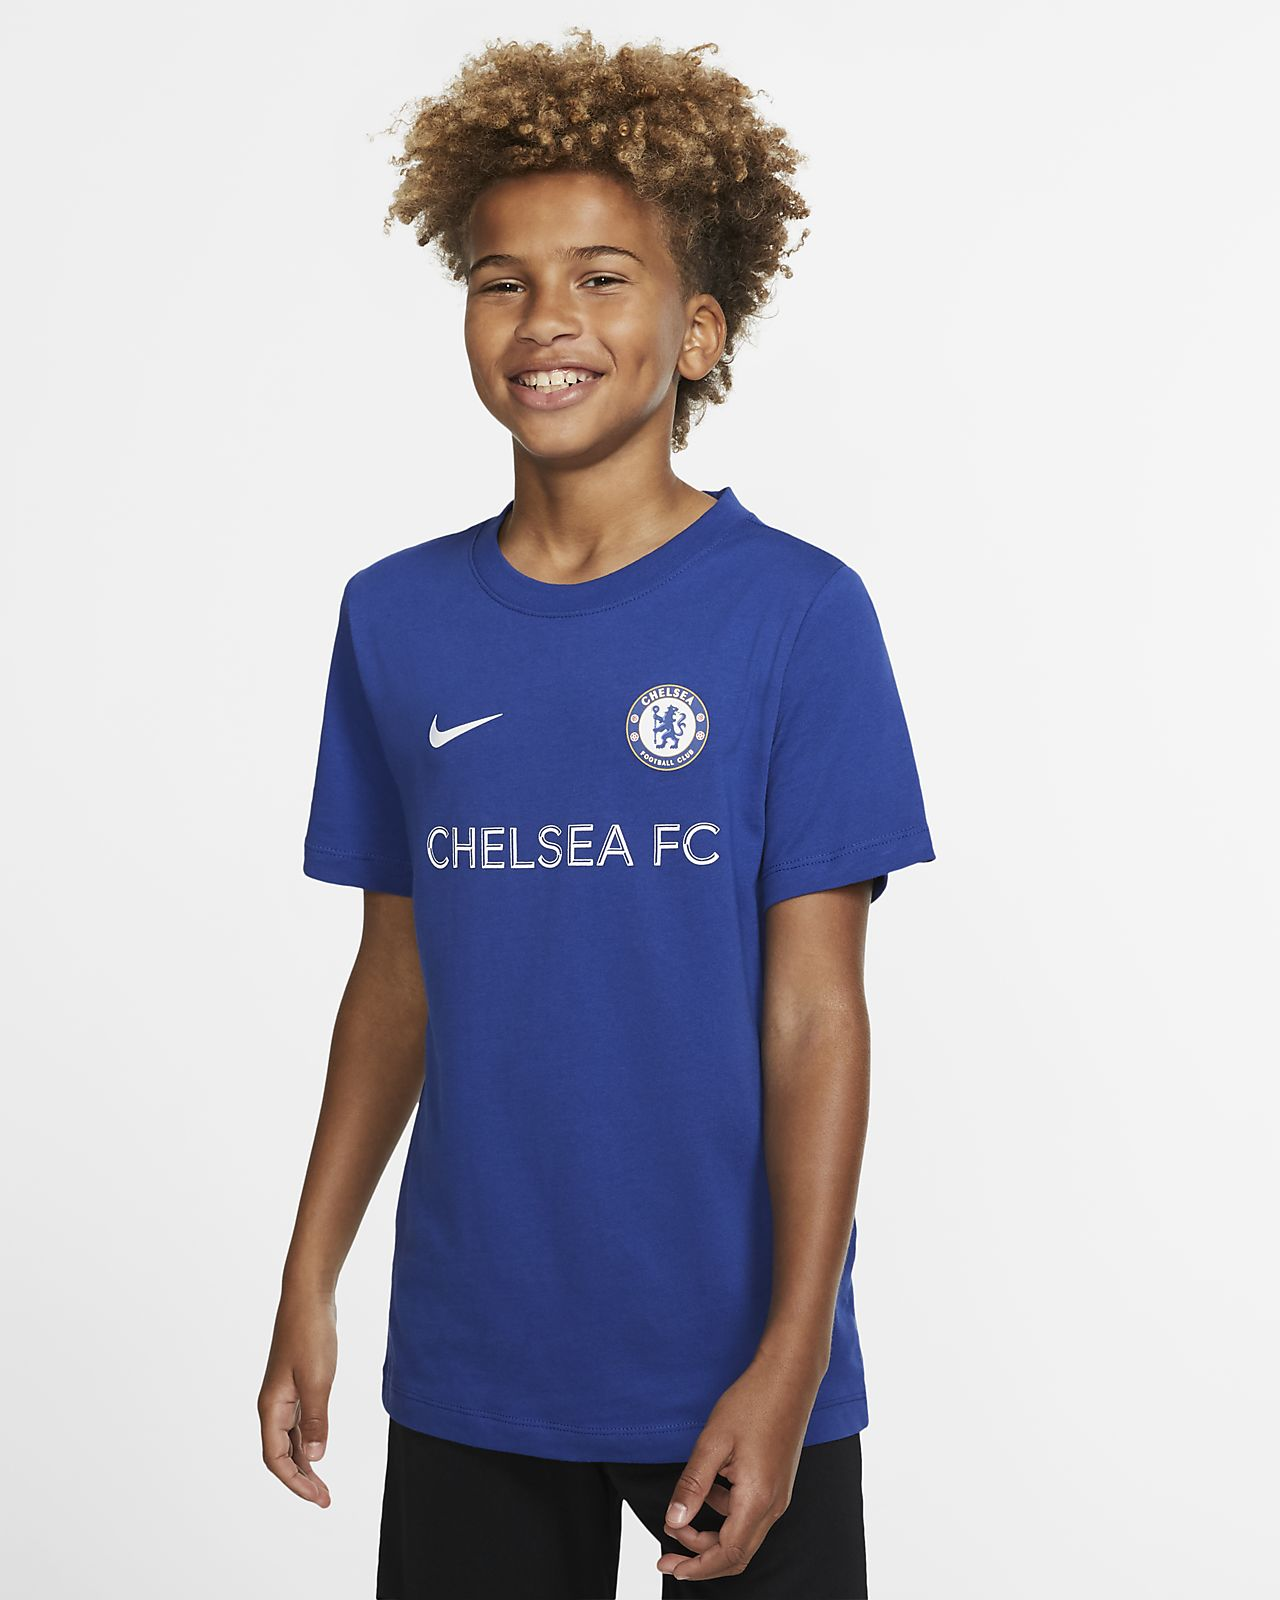 Chelsea FC Older Kids' T-Shirt